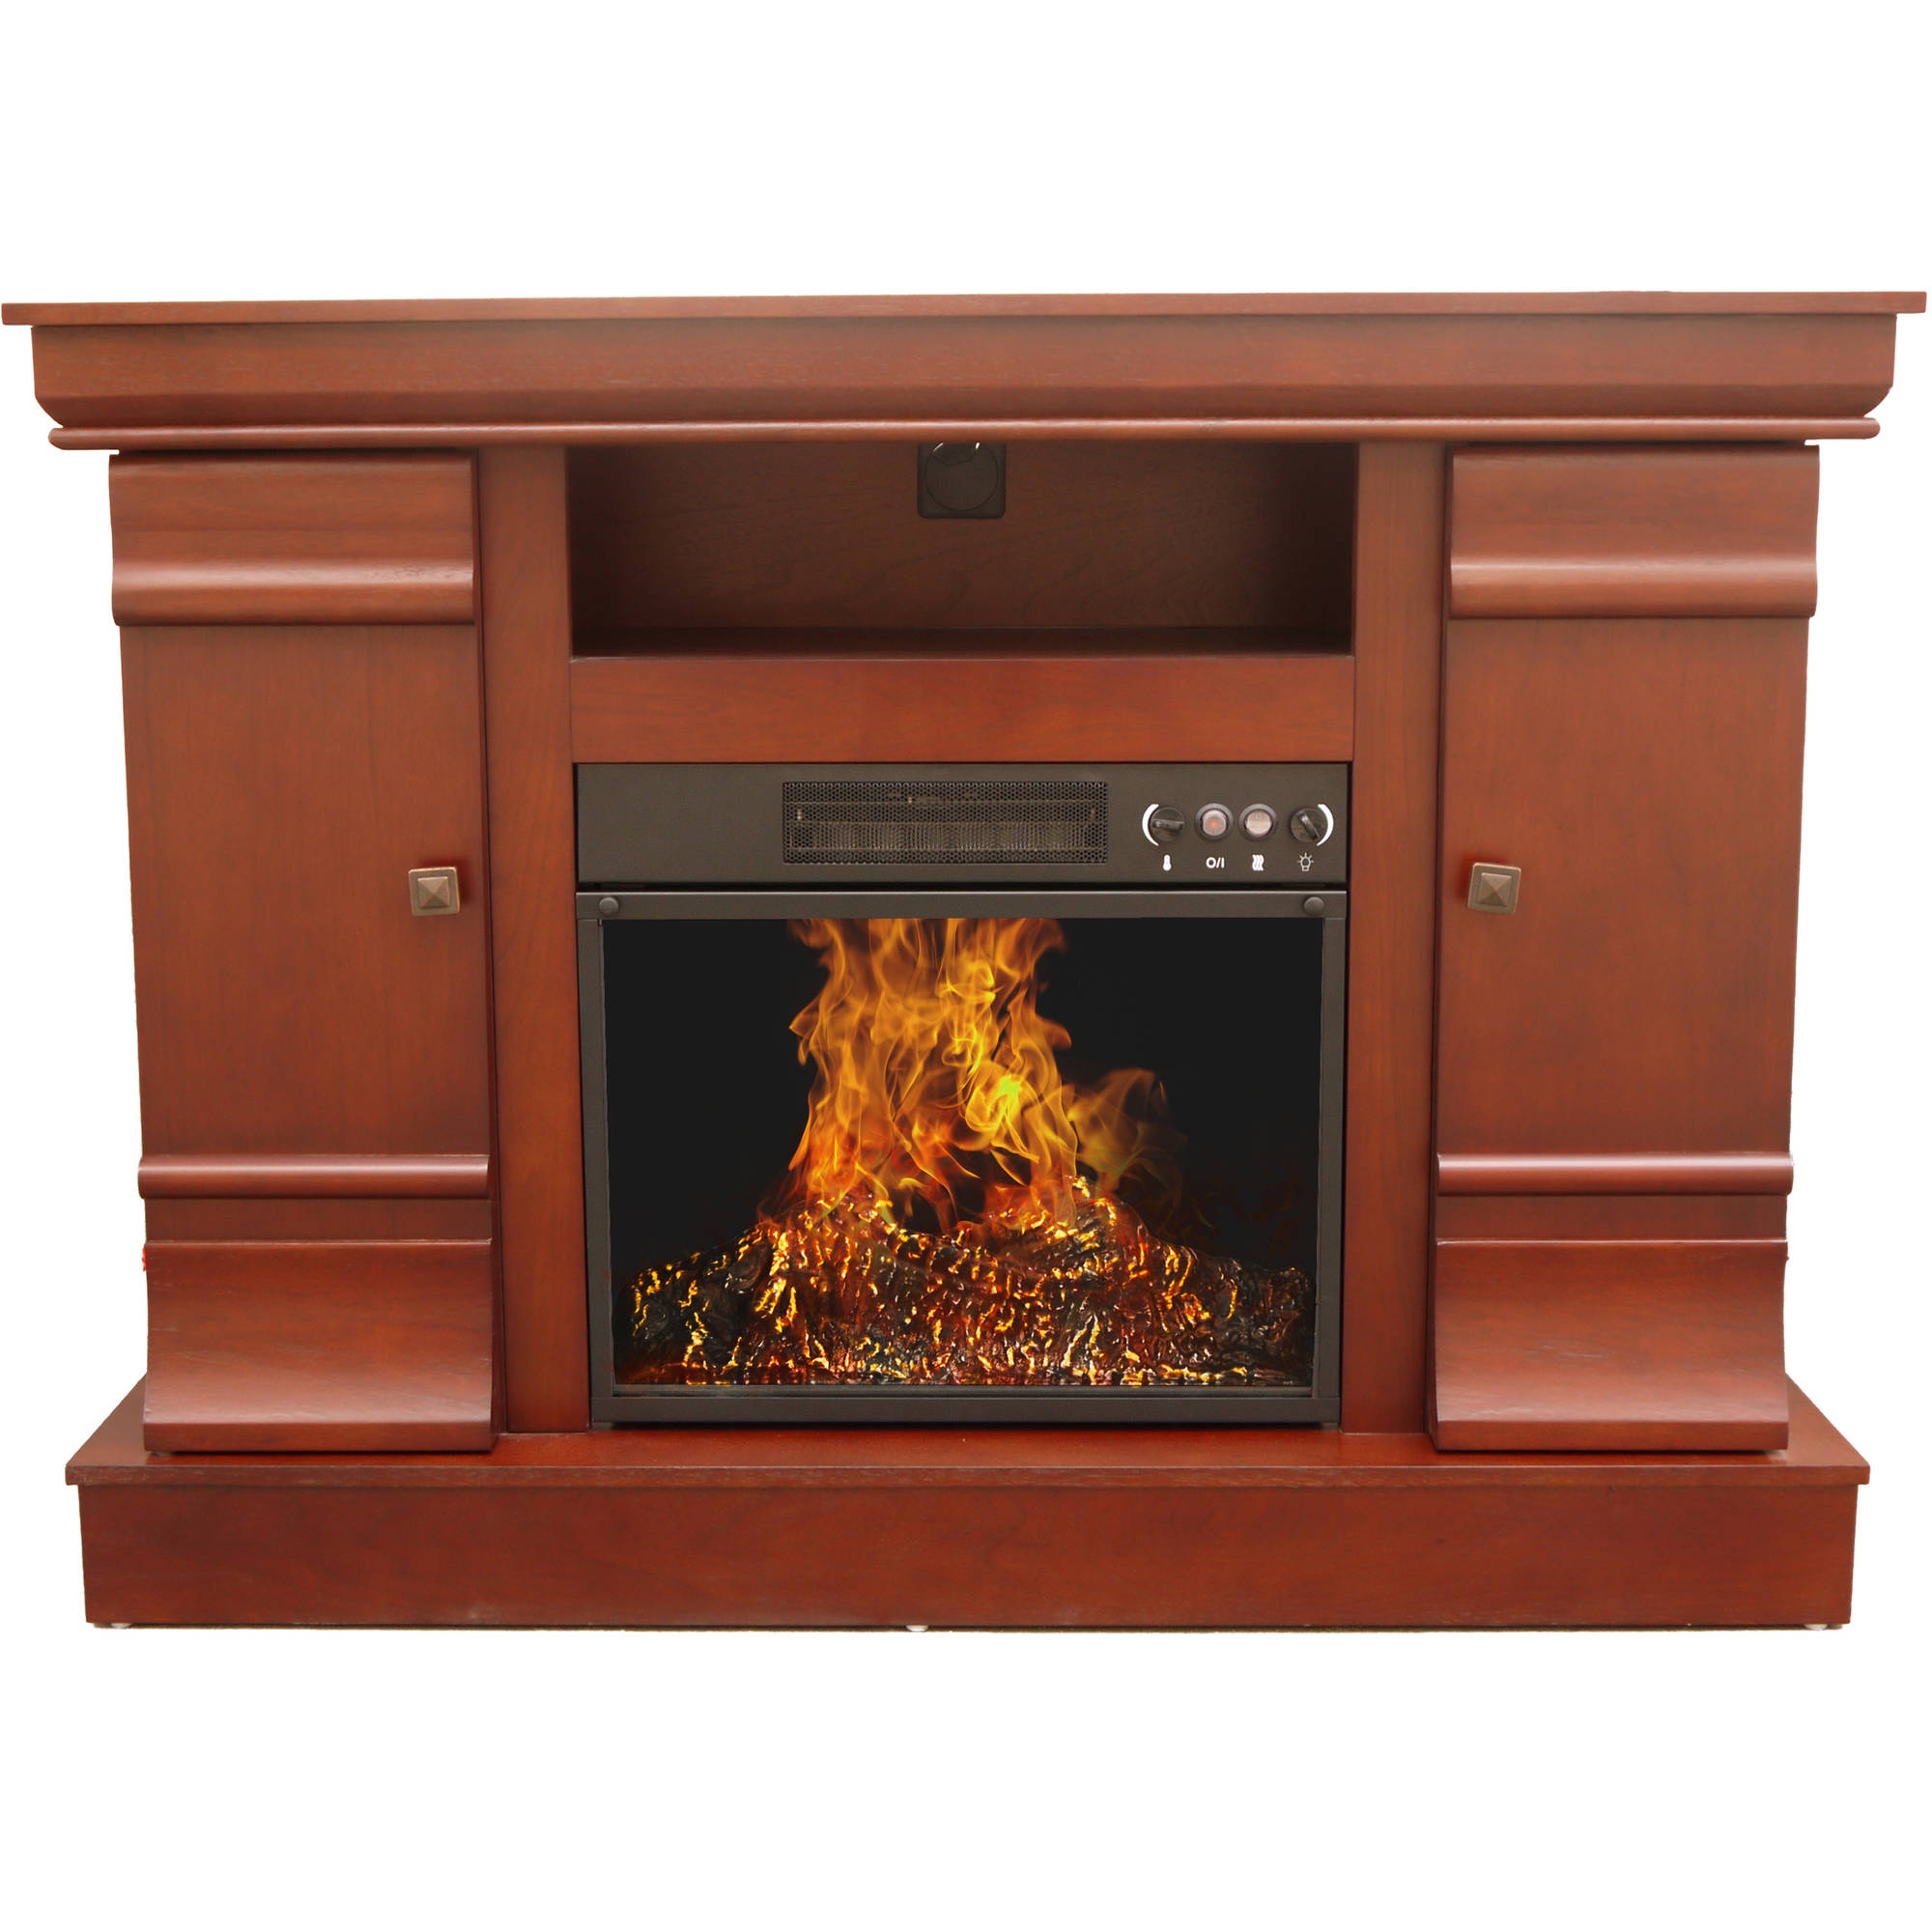 "Decor Flame Electric Fireplace with 42""Mantle"